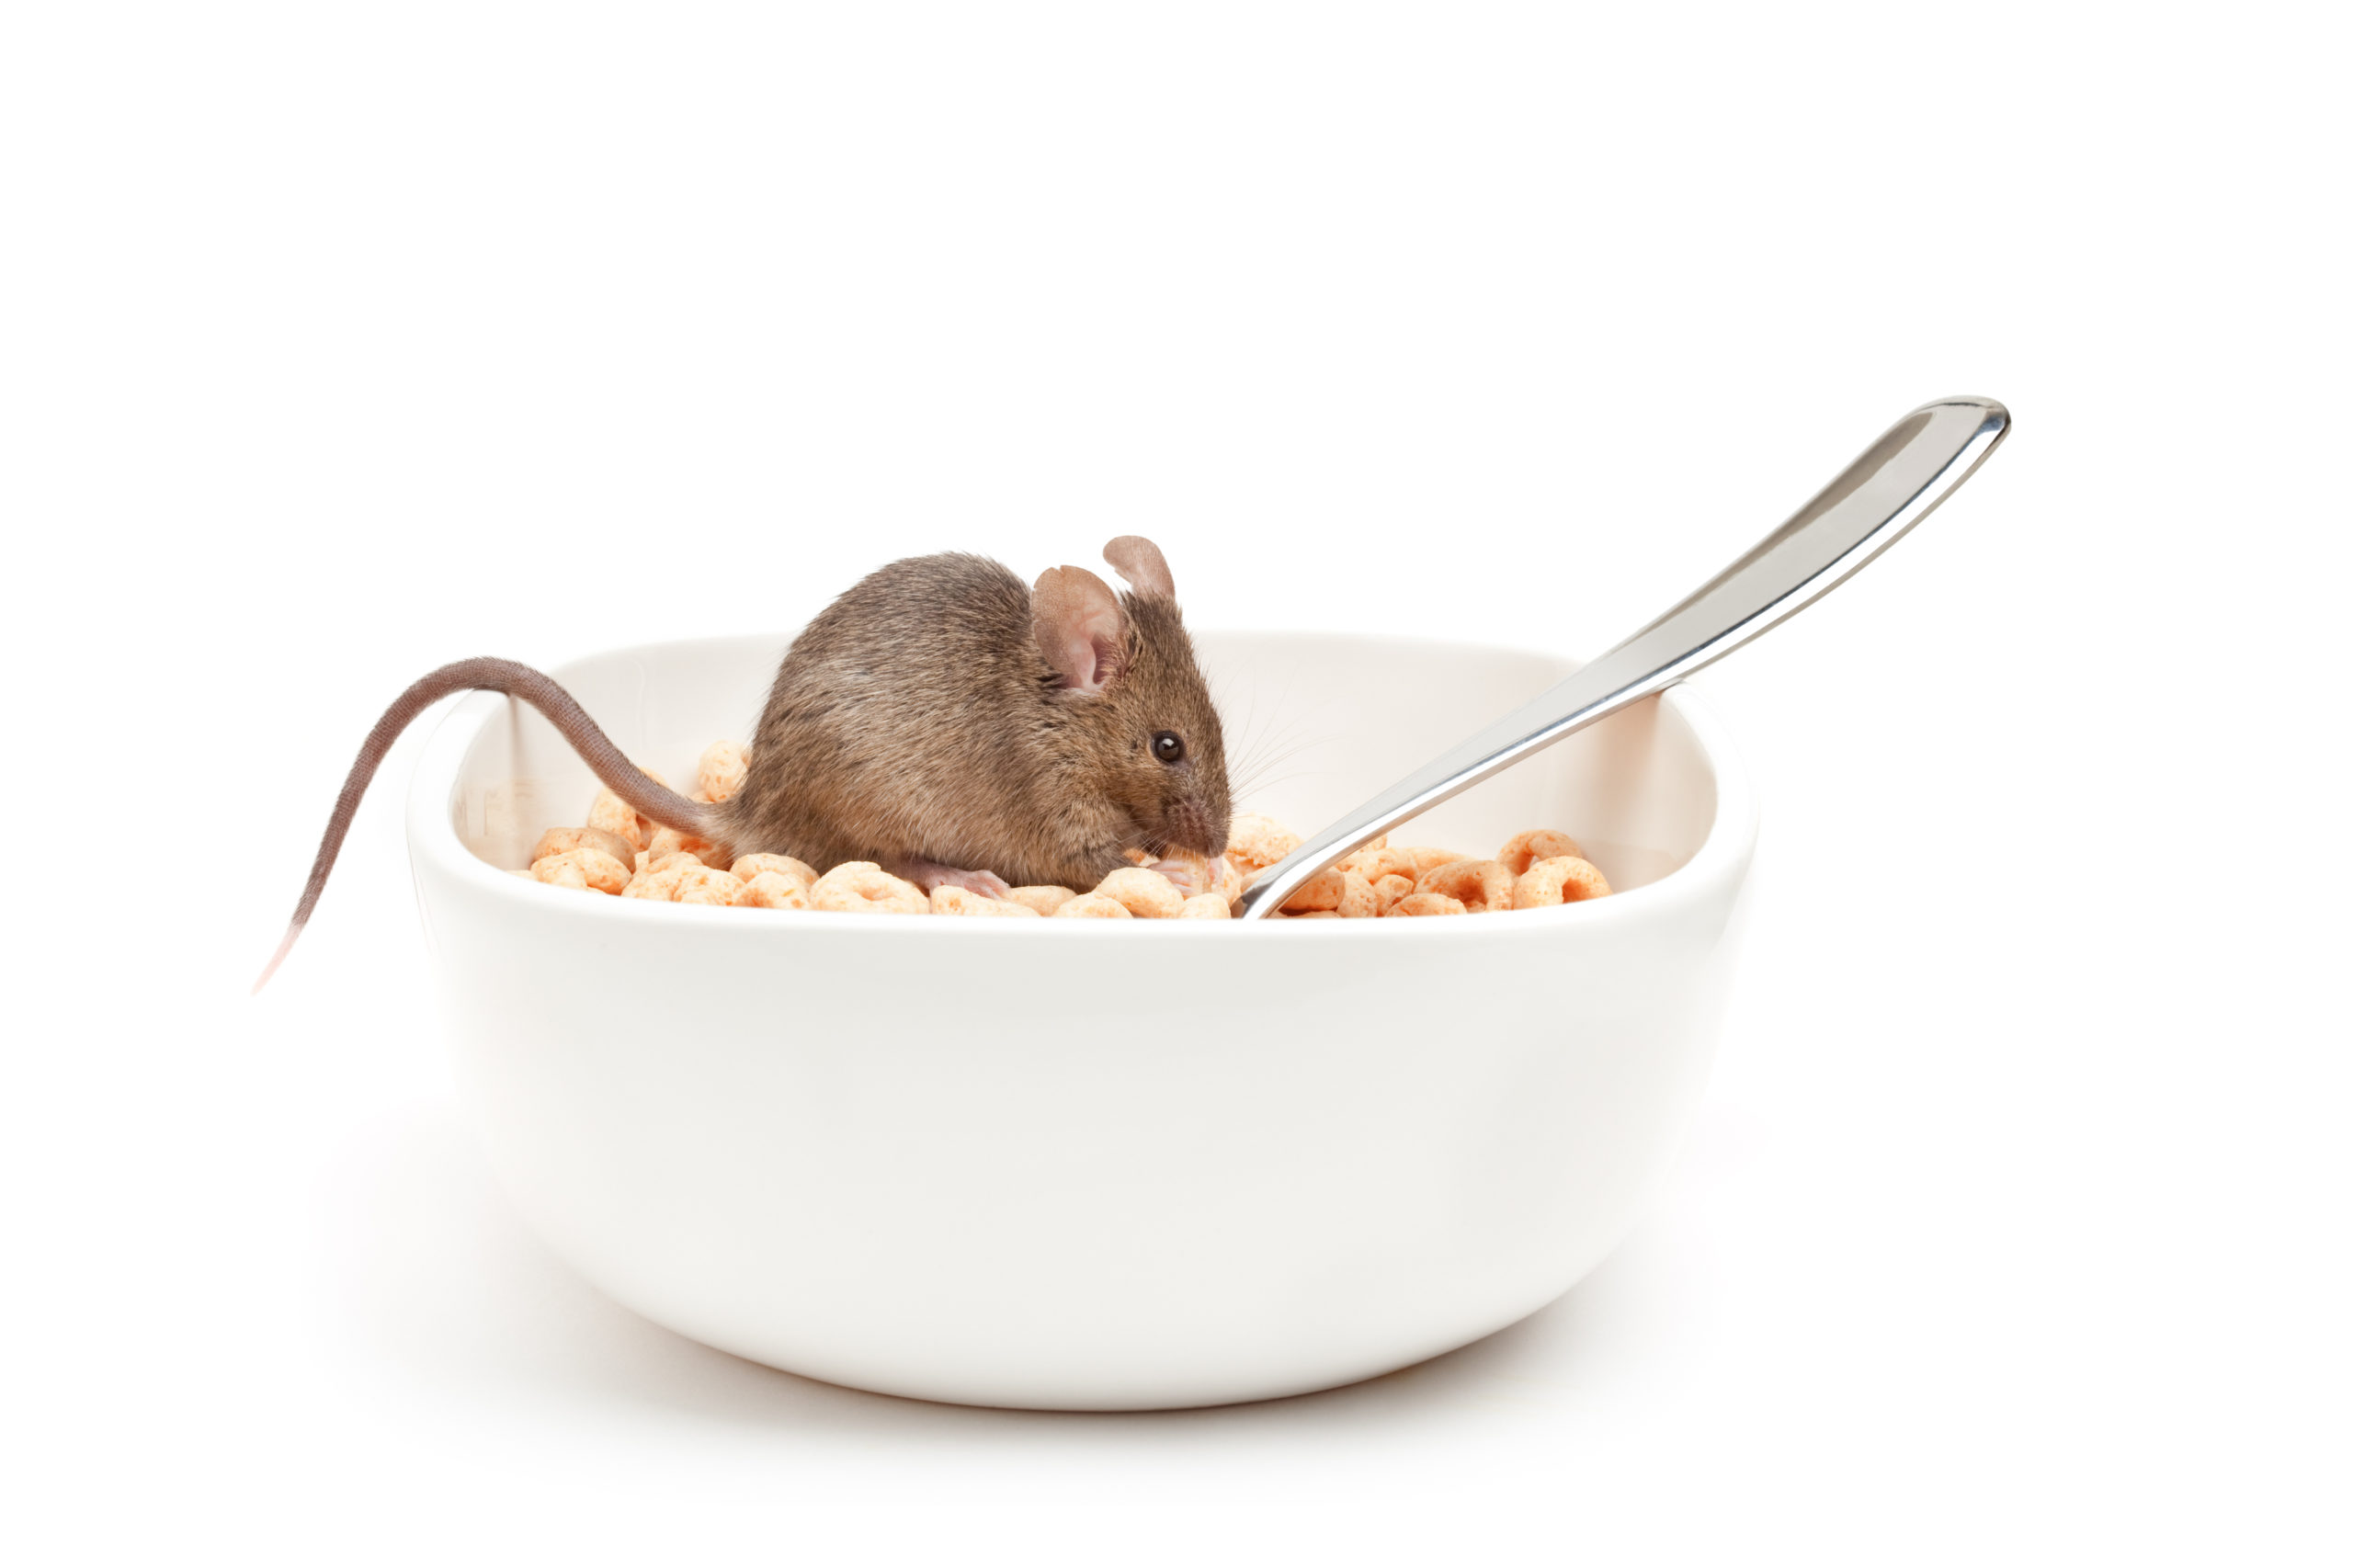 A little brown mouse sitting in a bowl of cereal hoops